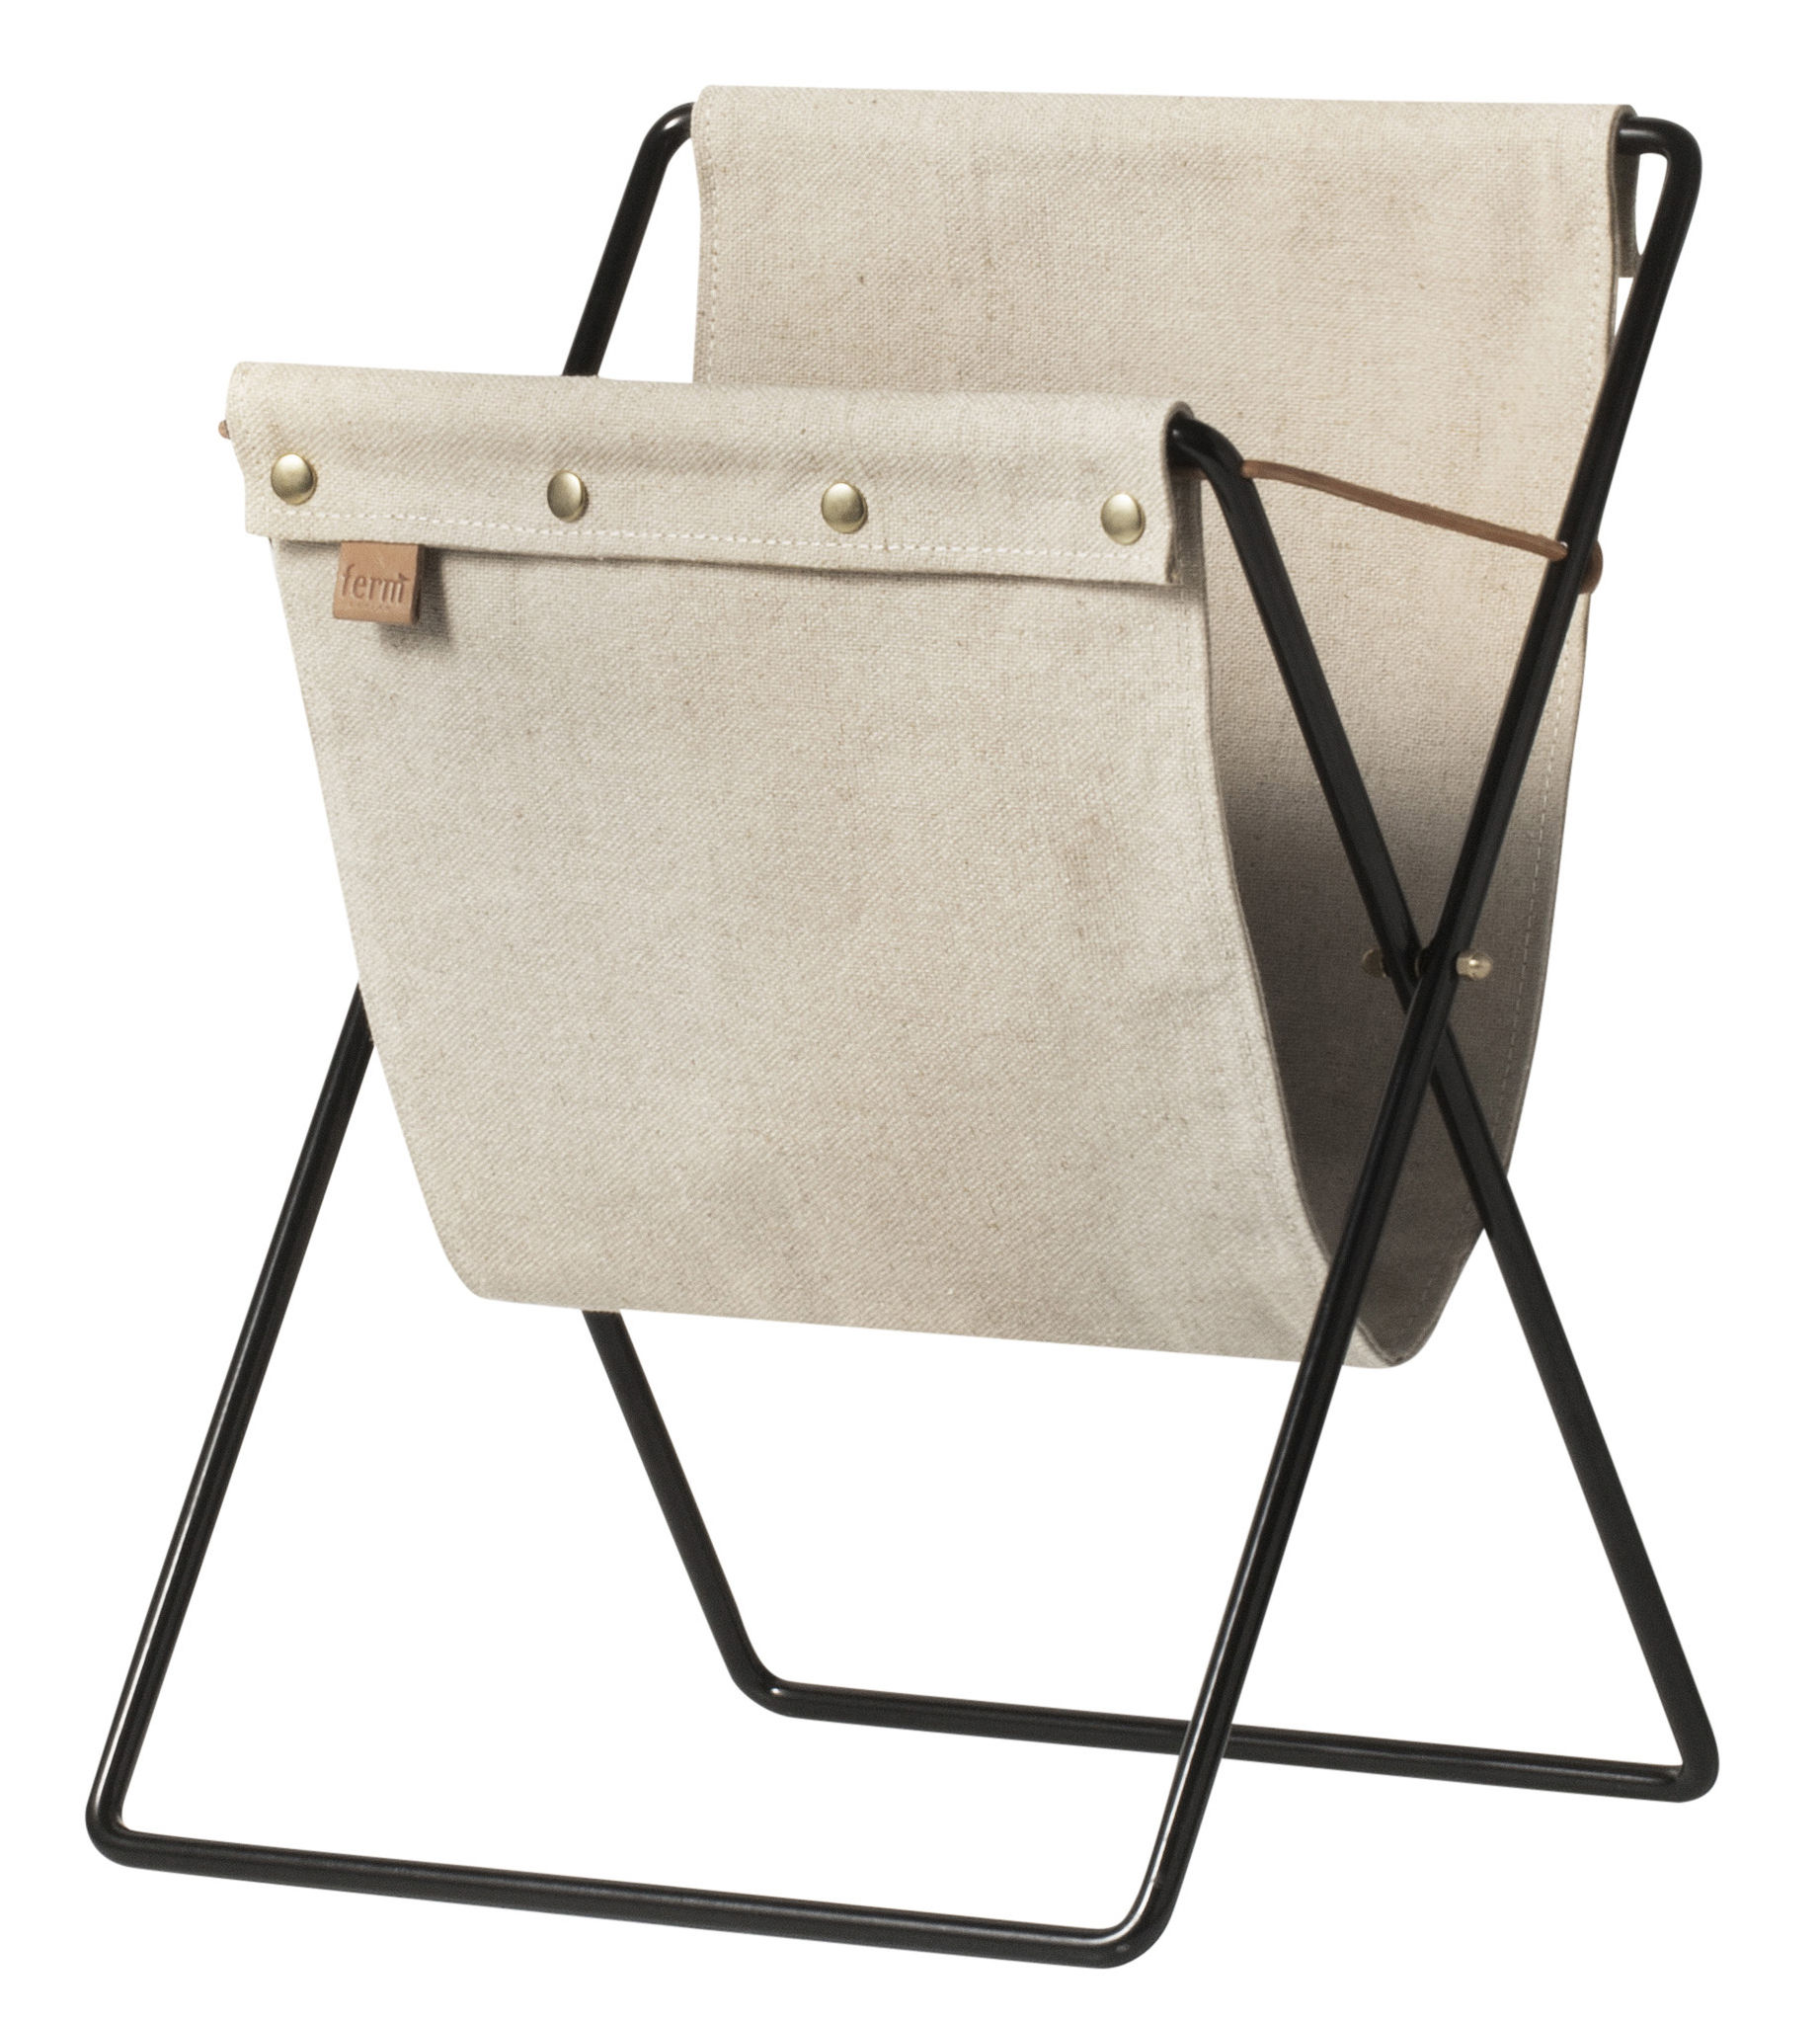 Decoration - Boxes & Baskets - Herman Magazine holder - Metal & fabric by Ferm Living - Beige / Black - Brass, Cotton, Epoxy lacquered metal, Leather